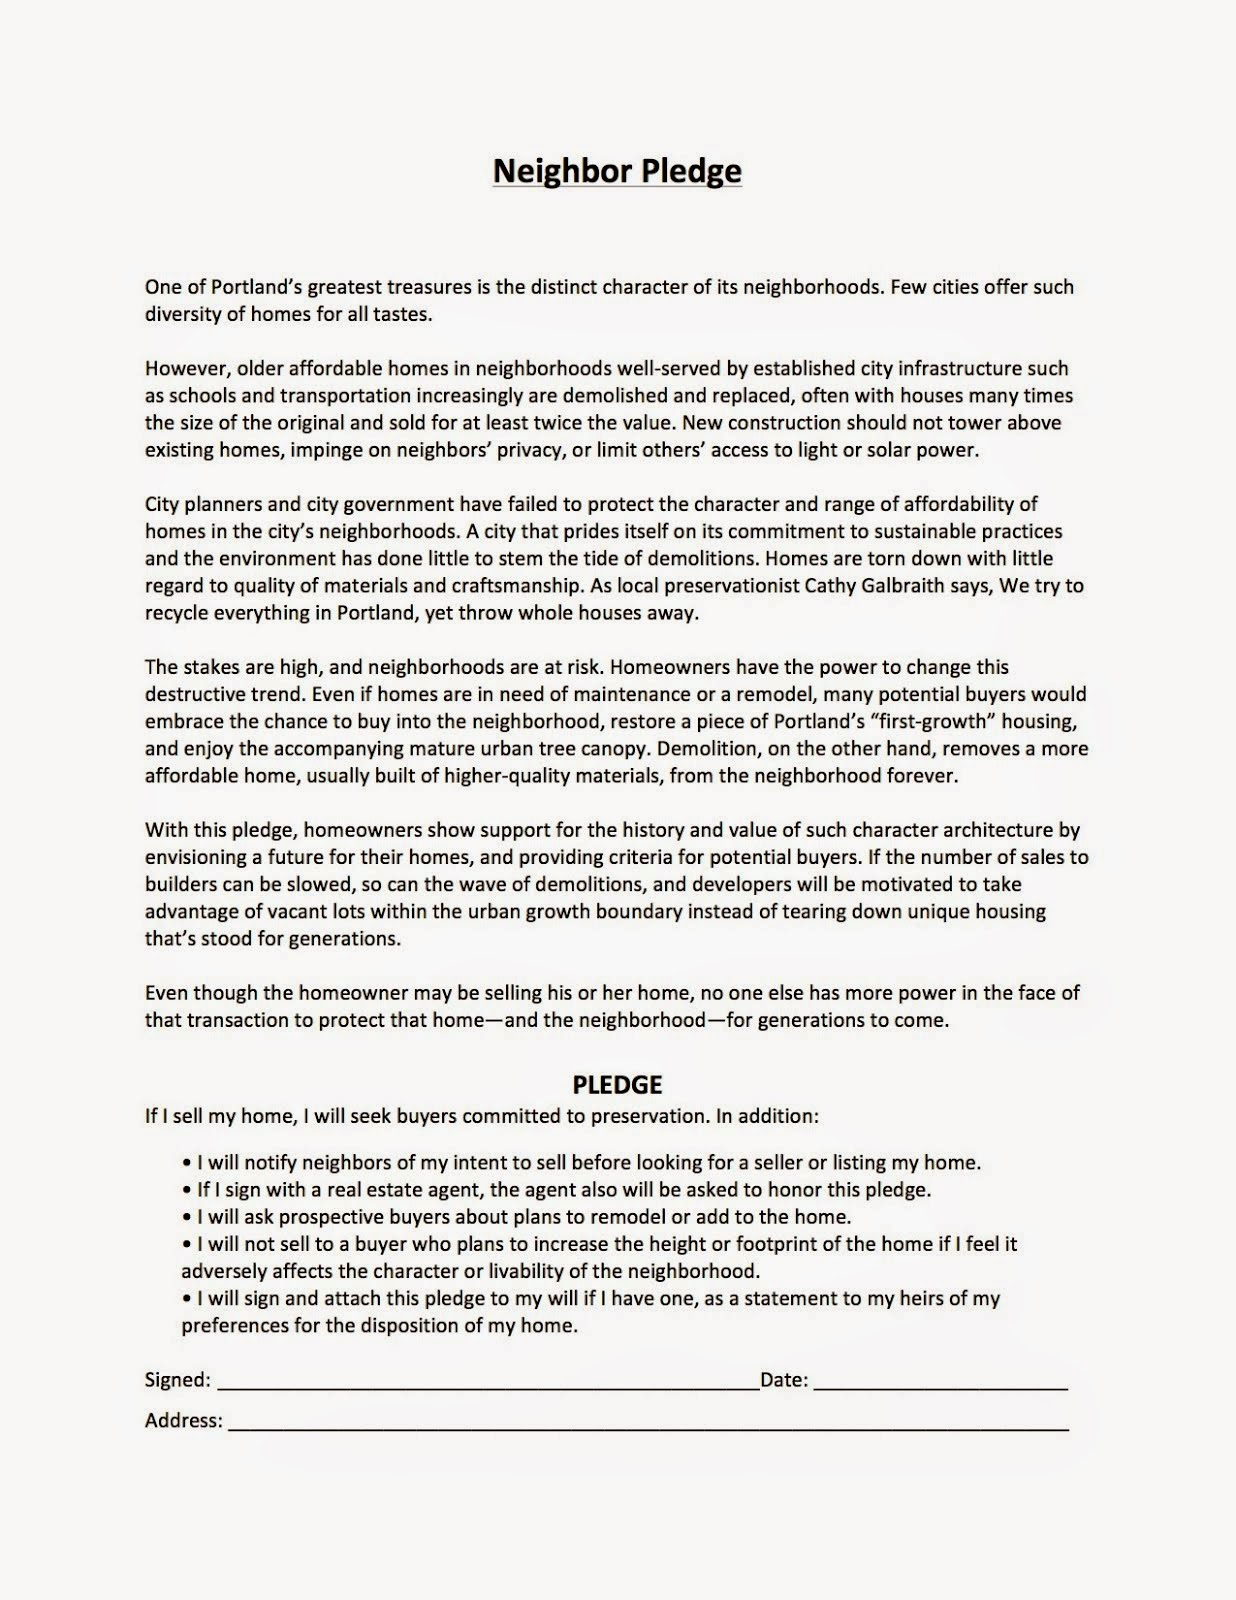 Take the neighbor pledge! Print or copy text from full-size version at bottom of blog page